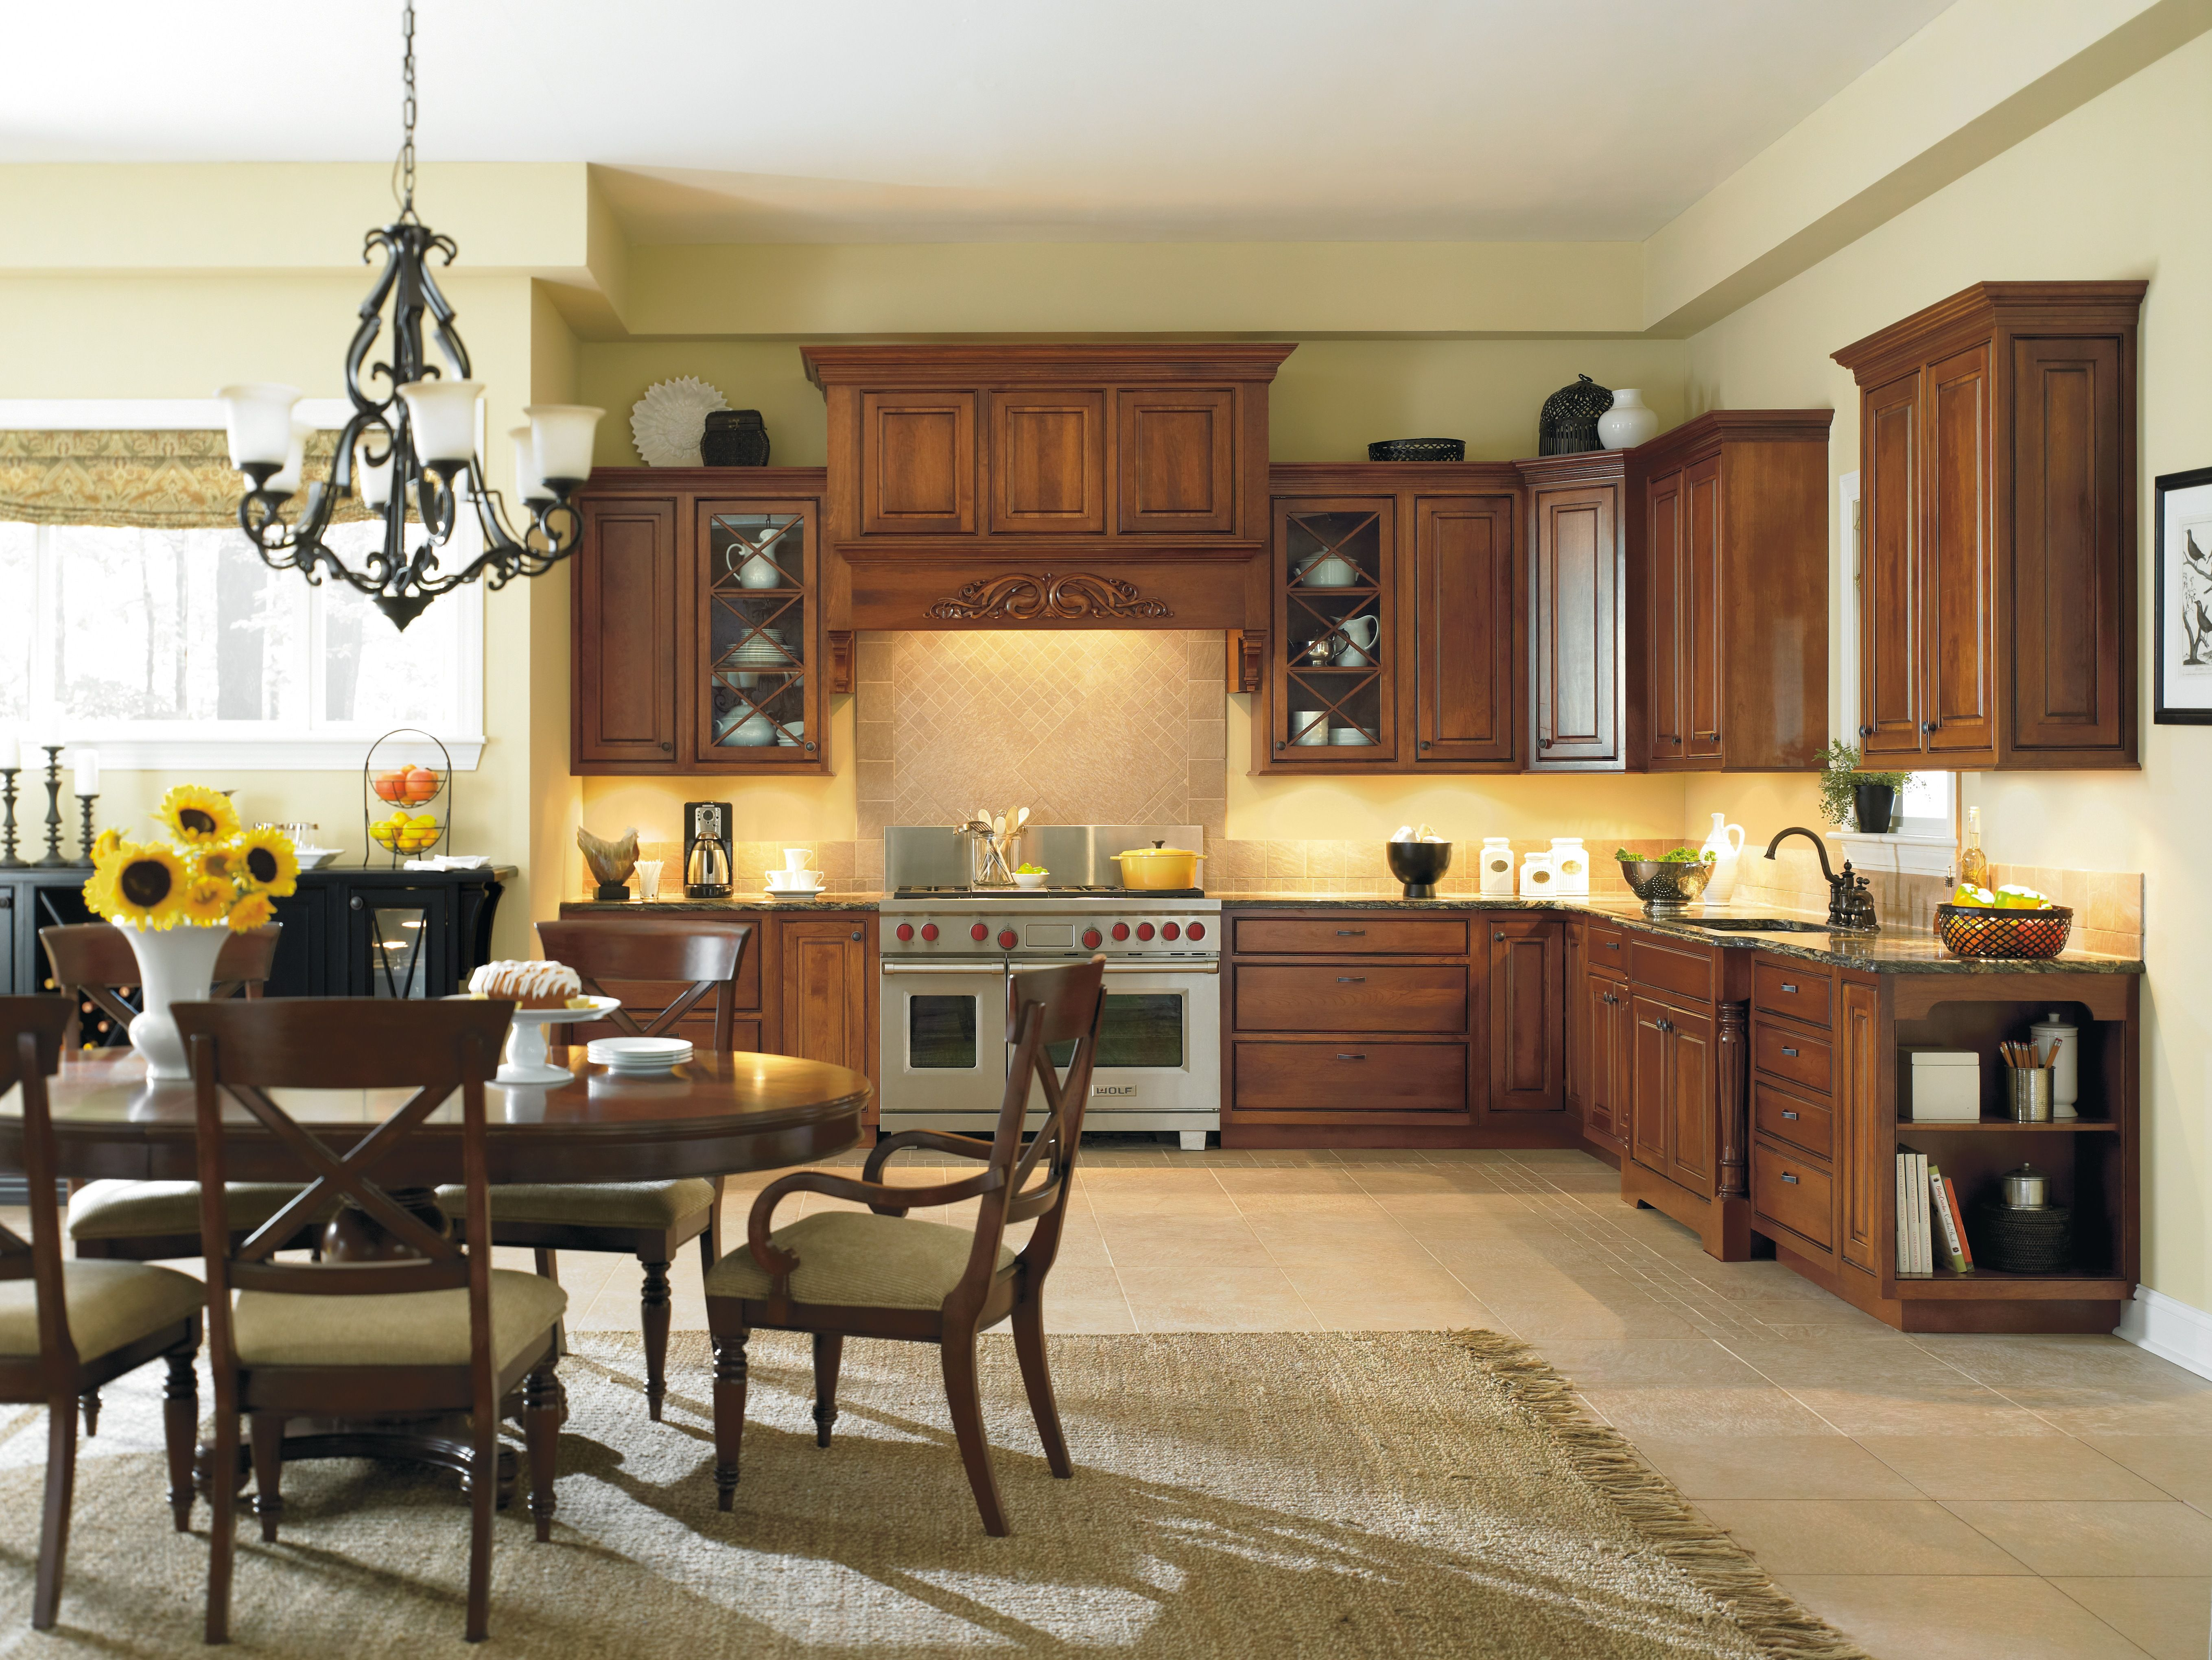 dynasty by omegas beaded inset portage in cherry nutmeg with onyx take beautifully to rich